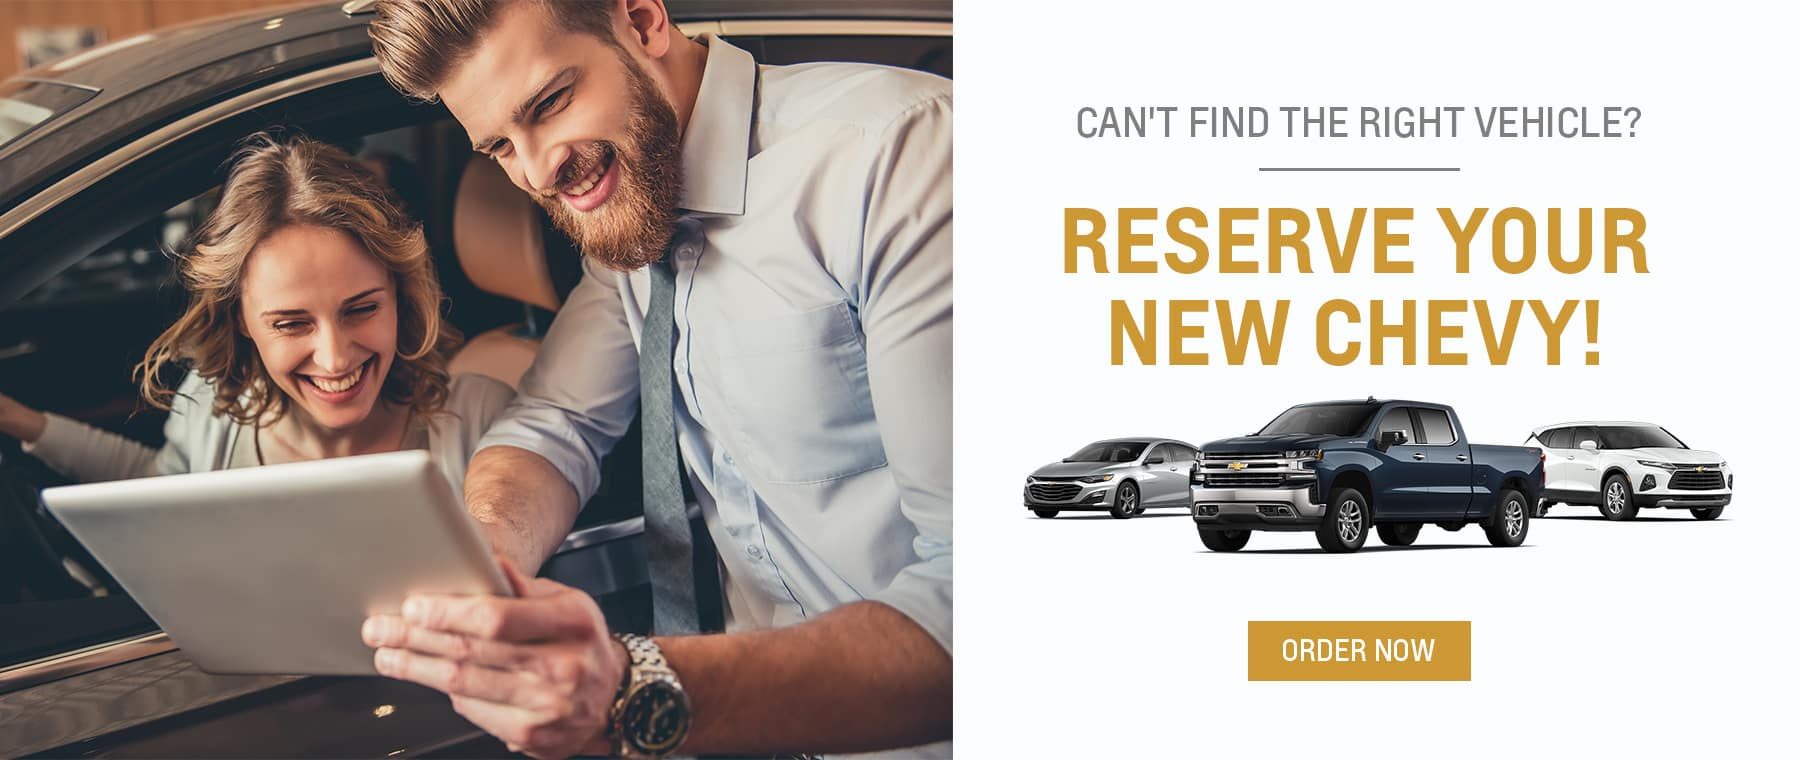 Reserve a New Chevy